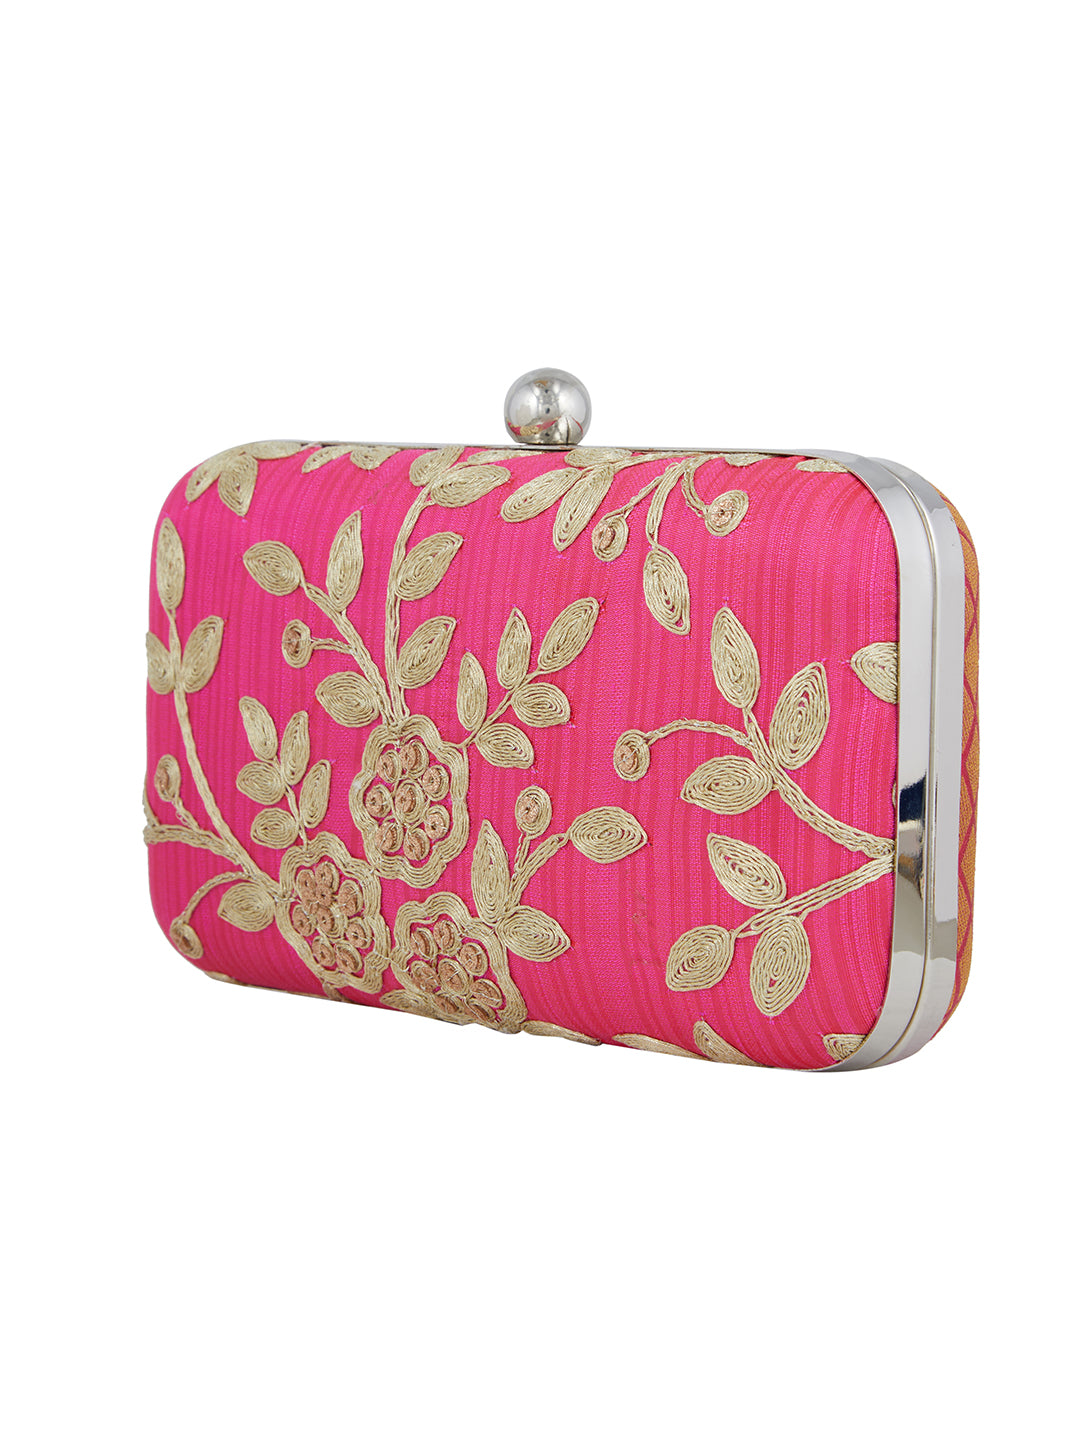 Keep your stuff handy while you are on the move with this pink coloured box clutch from the house of TARUSA. Made from silk fabric, this box clutch for women will be your companion for years to come. Unique and voguish, this box clutch will go well with your casual outfits.